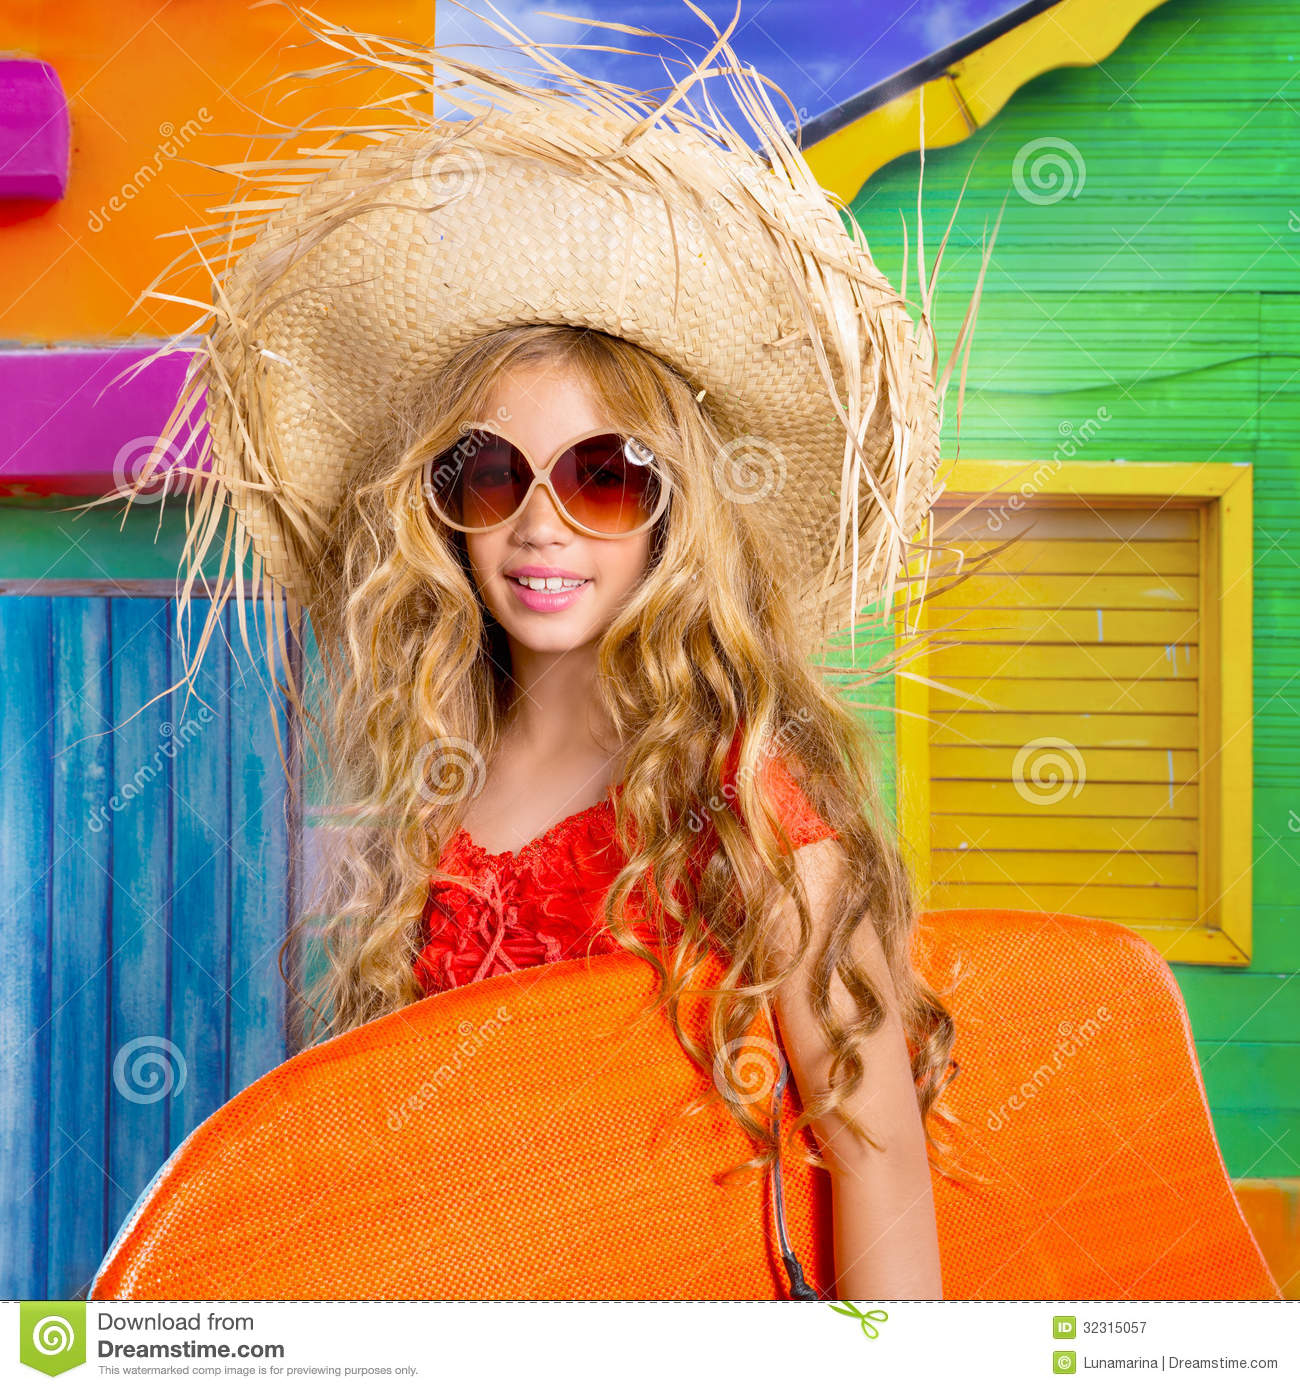 Beach Tropical Vacation Kid Blond Girl With Fashion